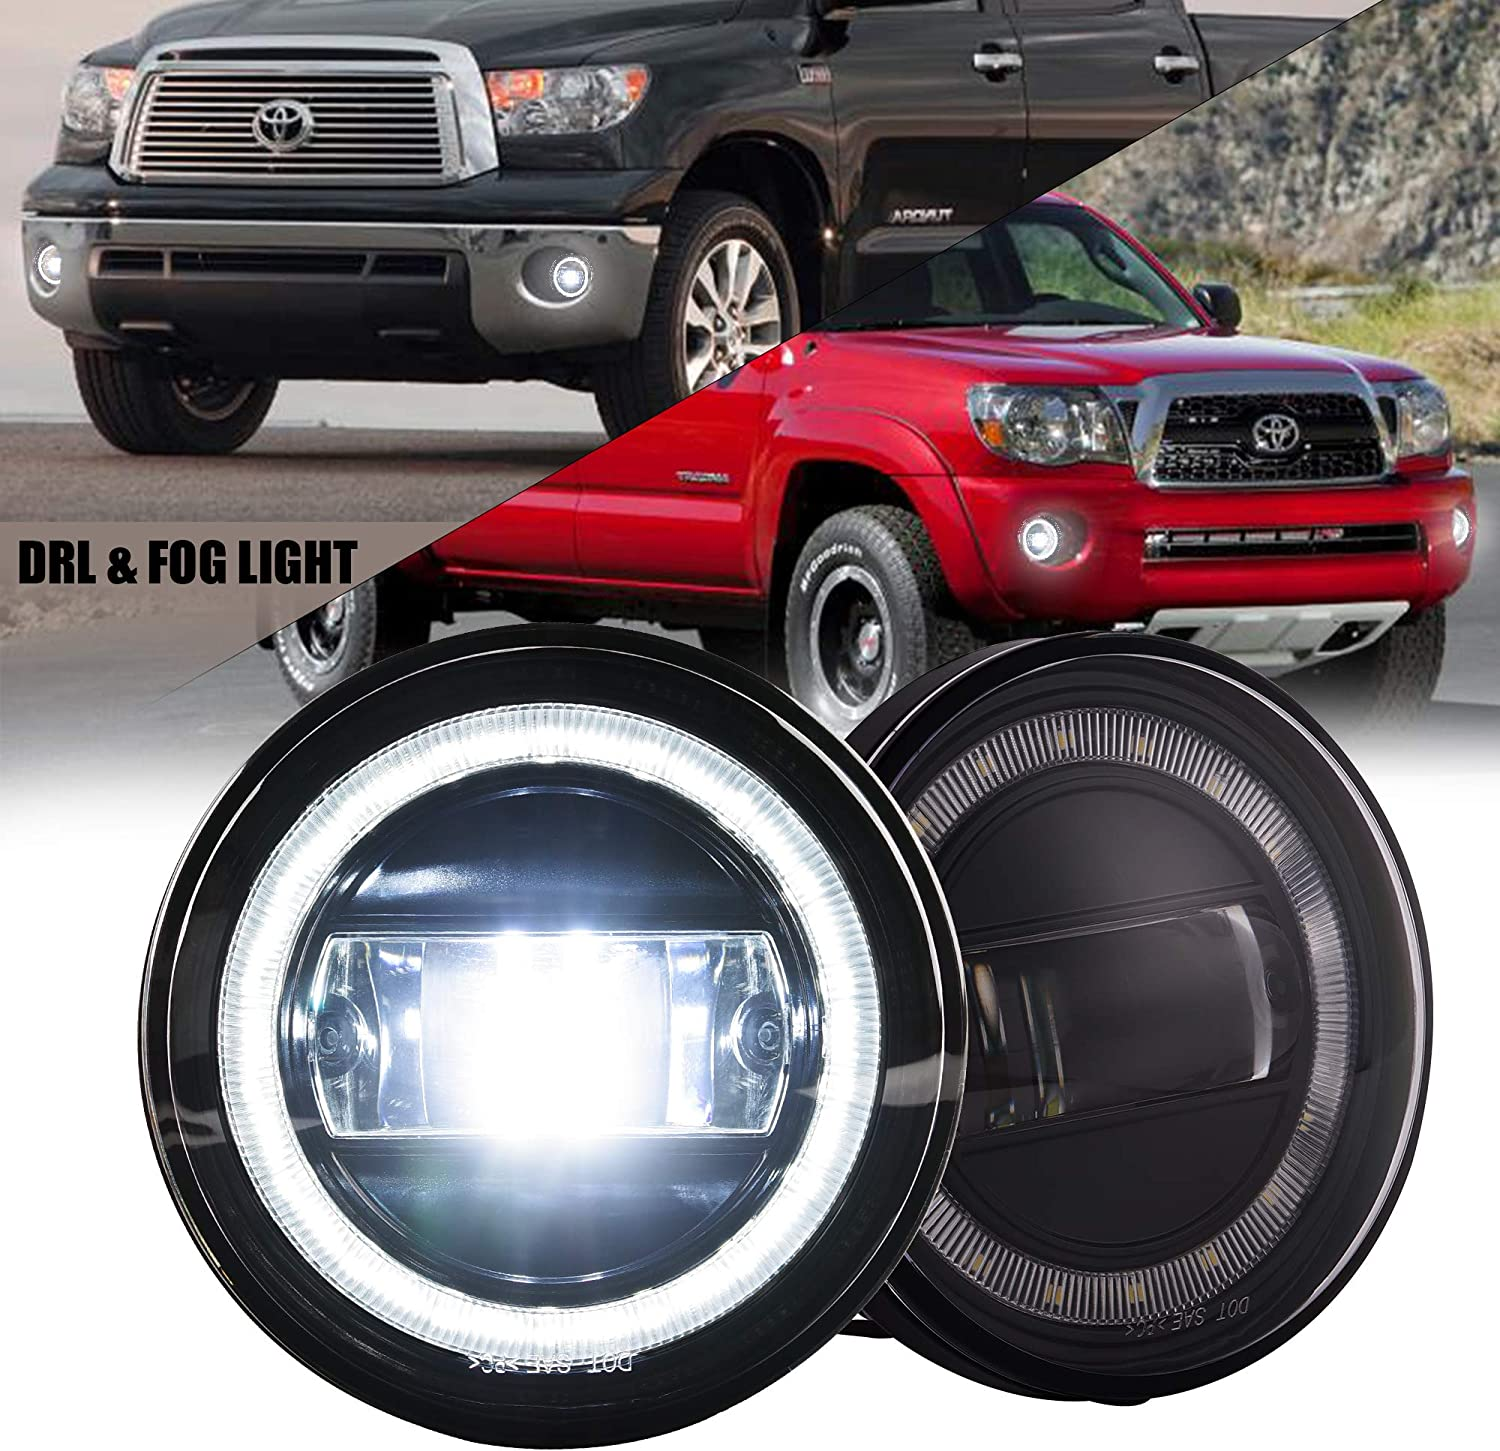 Plug /& Play Fog Lights LED 15W for Tundra 2007-2013//2008-2015 Sequoia//Tacoma 2005-2011//2004-2006 Solara Front Bumper LED Lights